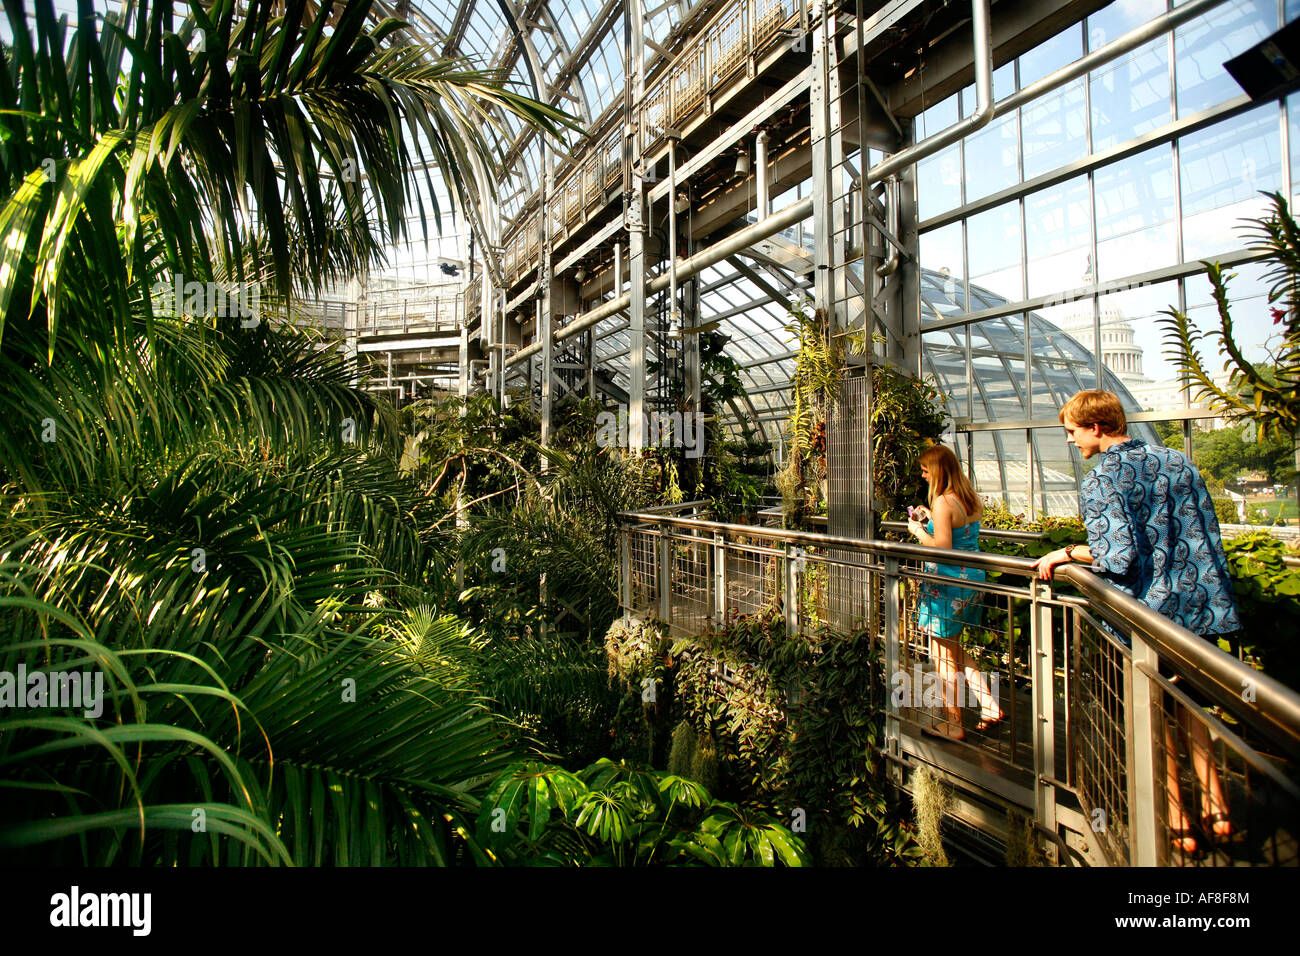 Washington Botanic Gardens Stock Photos & Washington Botanic Gardens ...